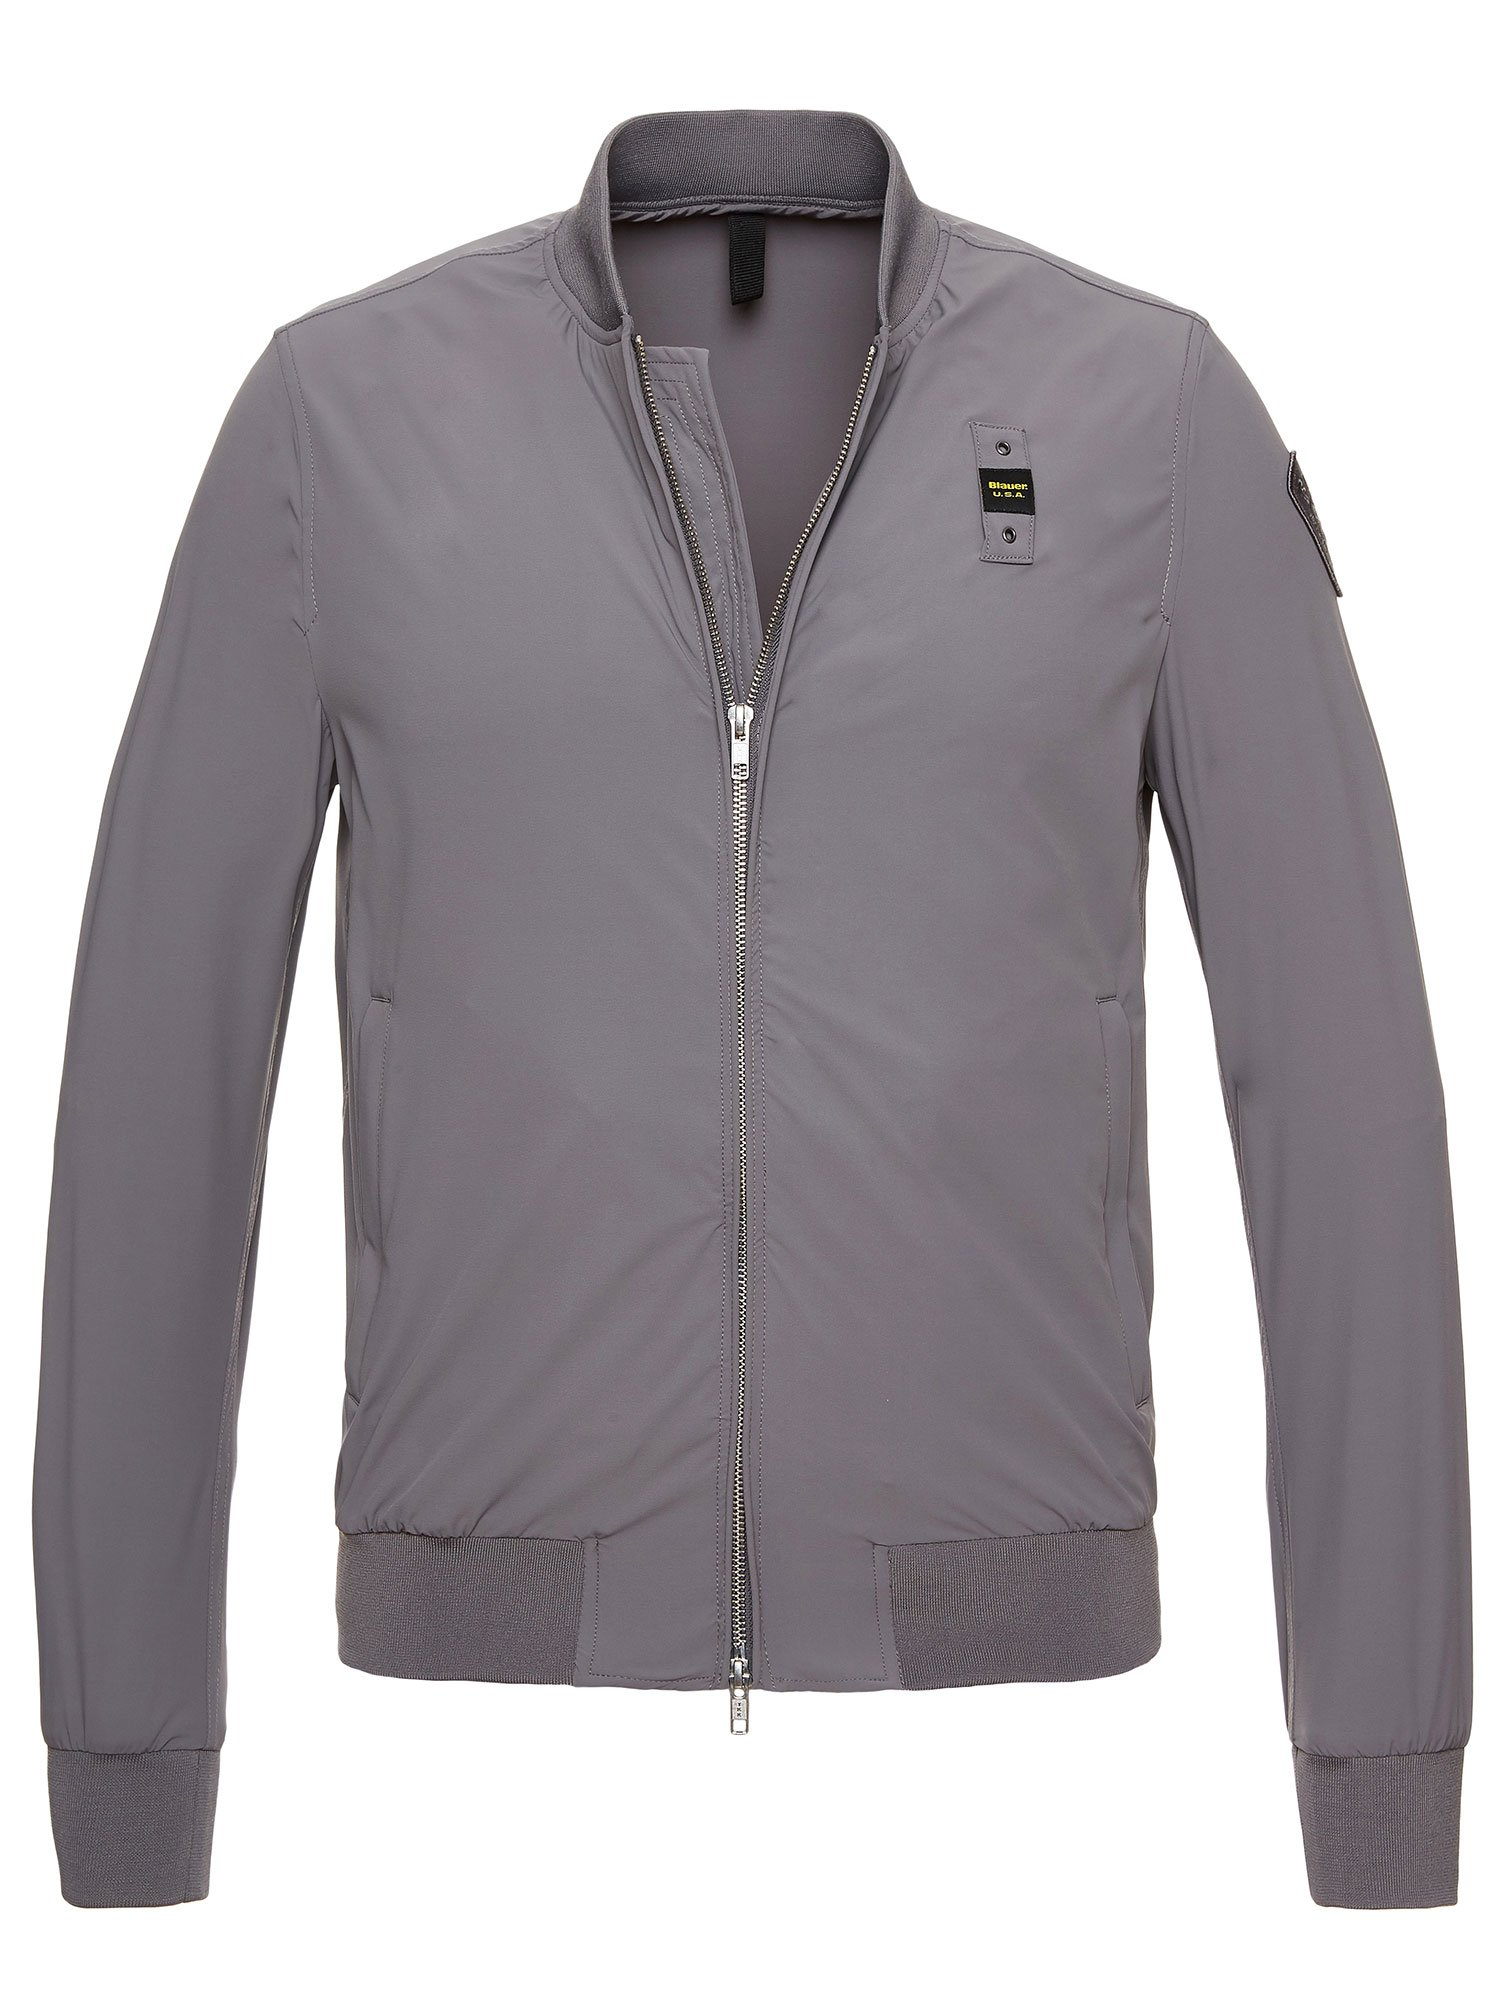 AUSTIN WINDPROOF STRETCH JACKET - Blauer